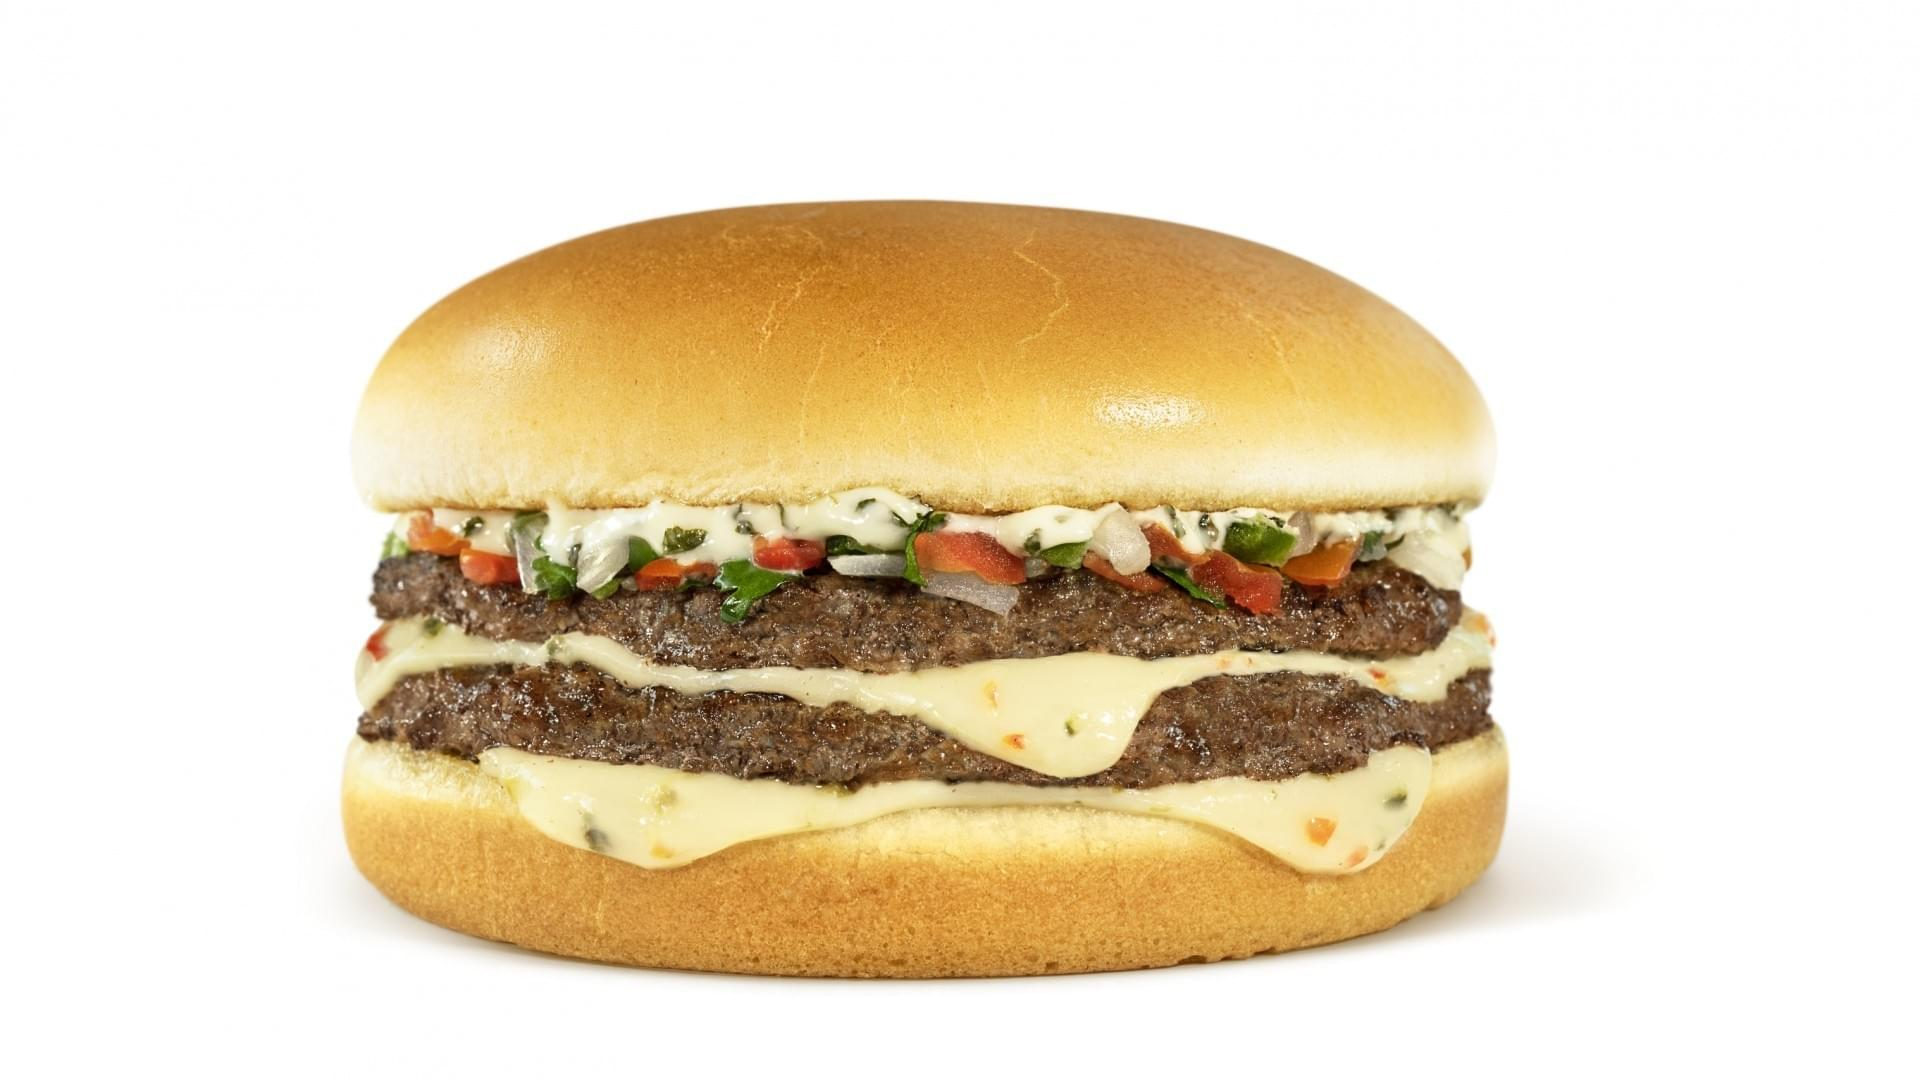 Whataburger Pico De Gallo Burger Nutrition Facts